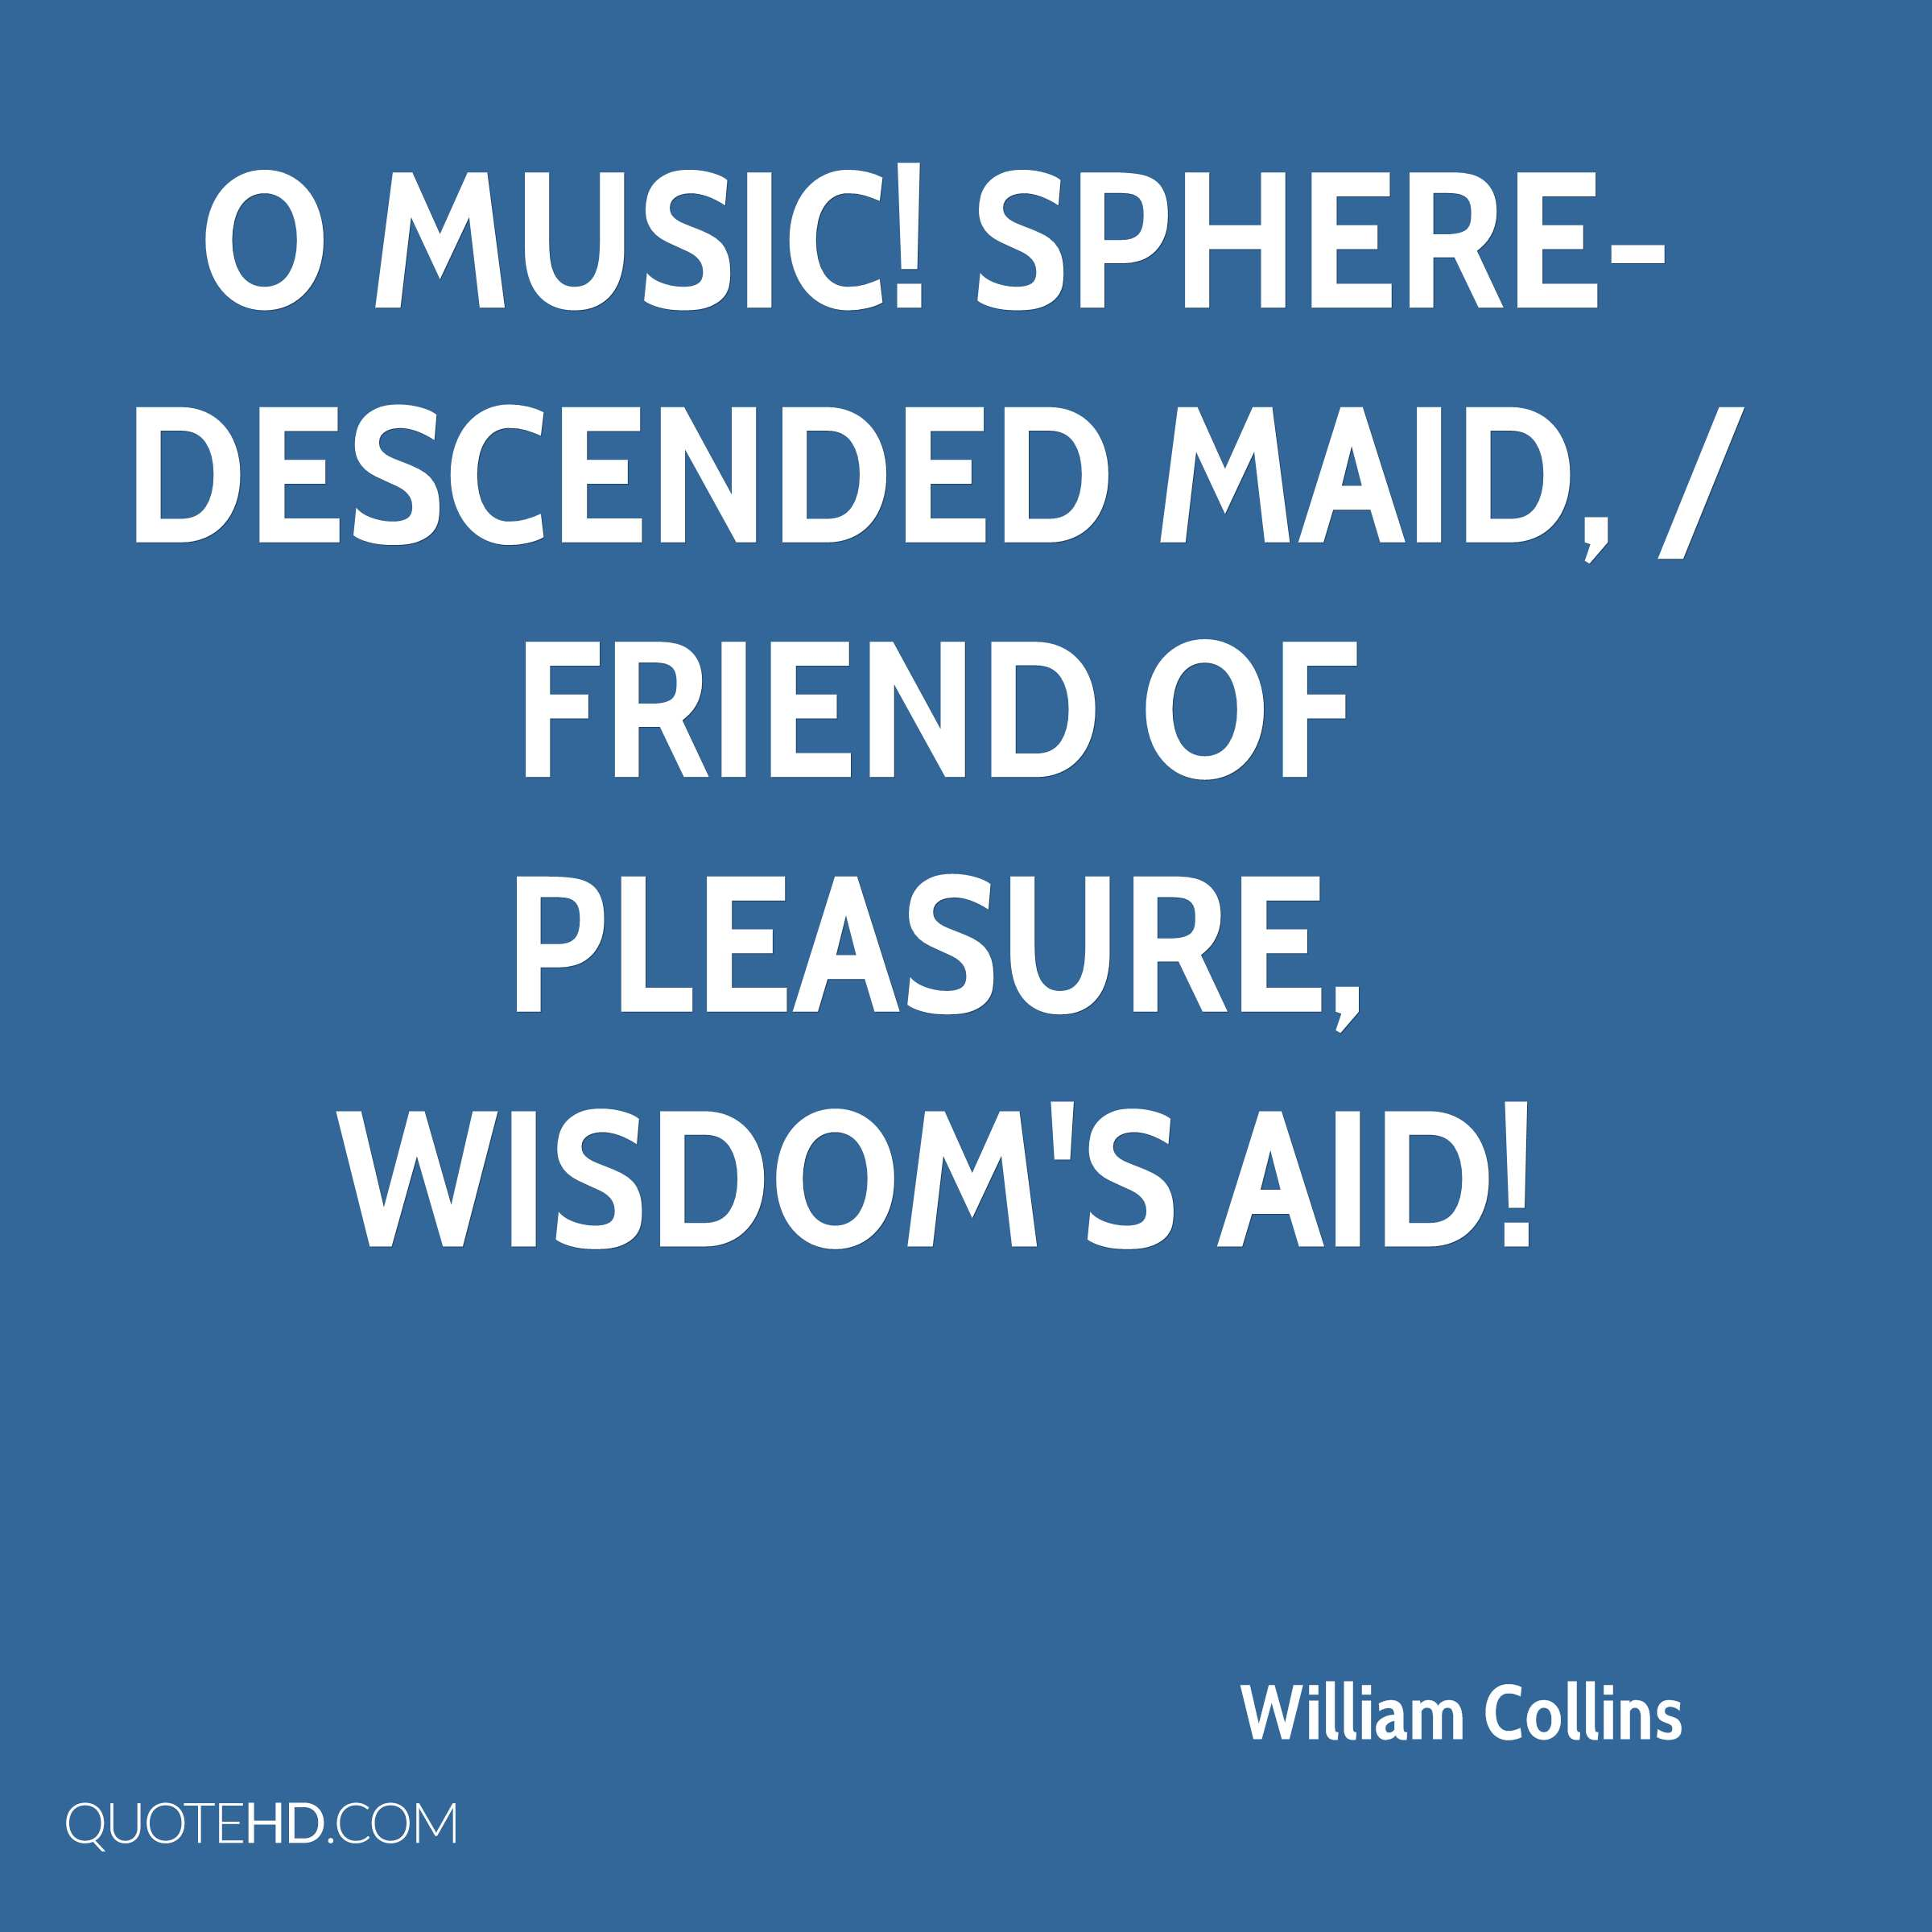 O Music! sphere-descended maid, / Friend of Pleasure, Wisdom's aid!